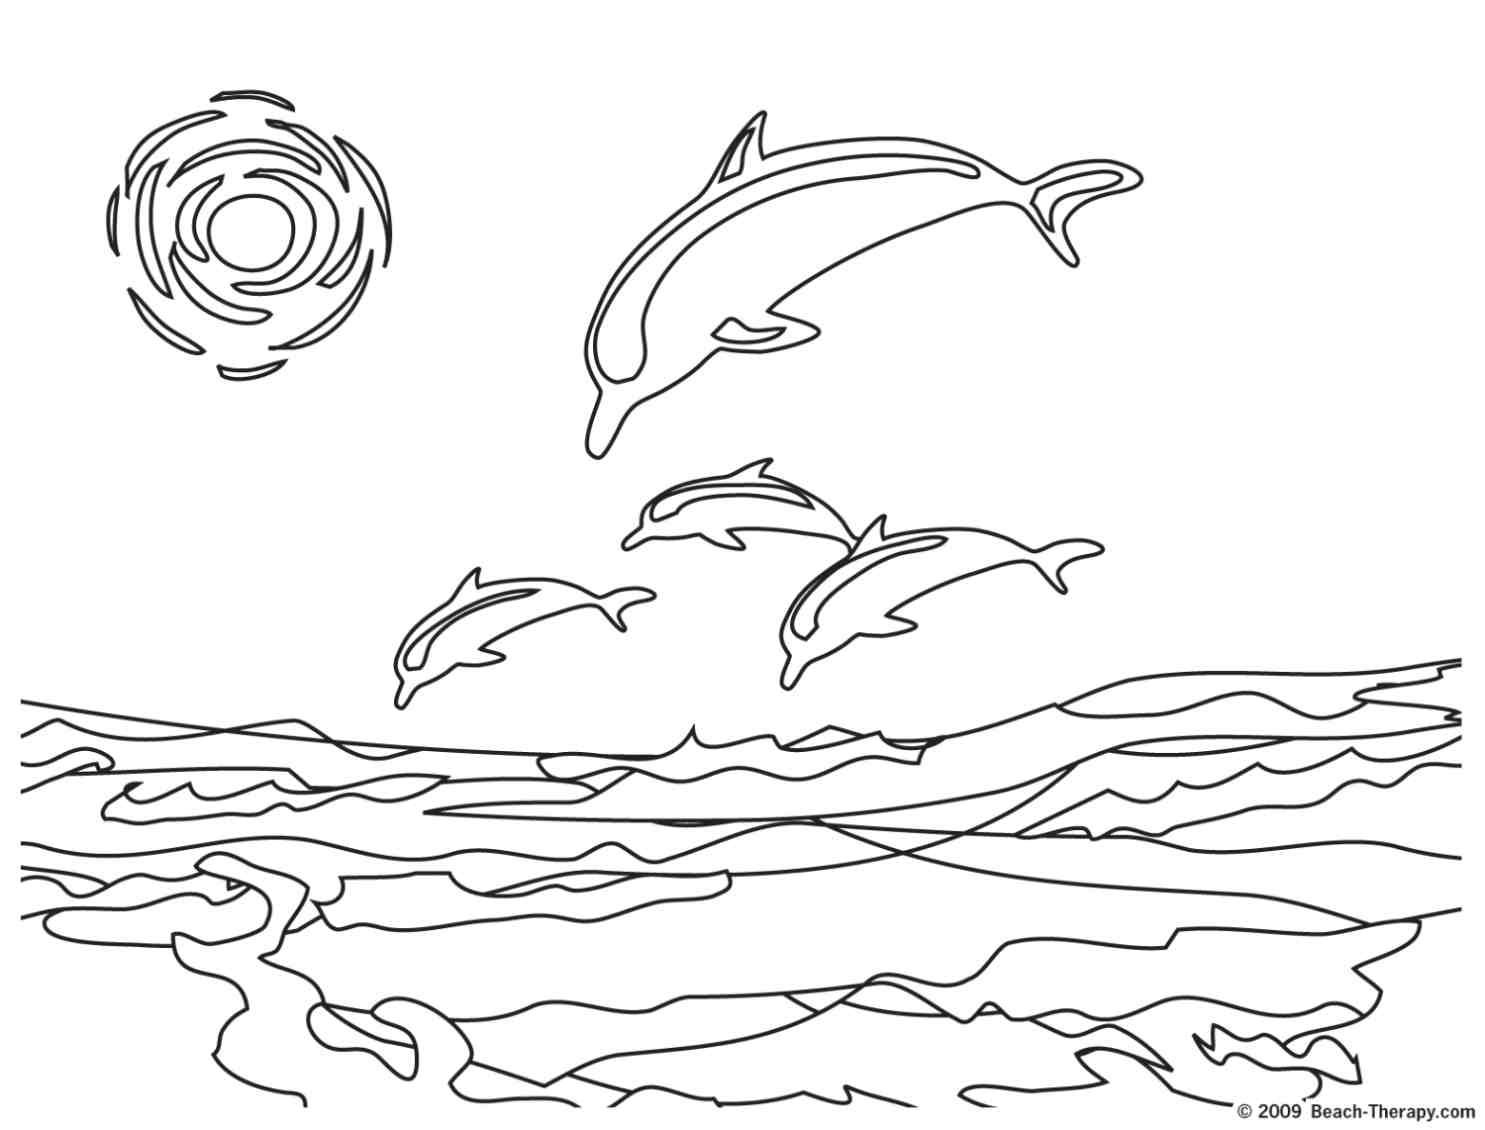 Dolphin picture to color for kids. My son loves dolphins! | Coloring ...